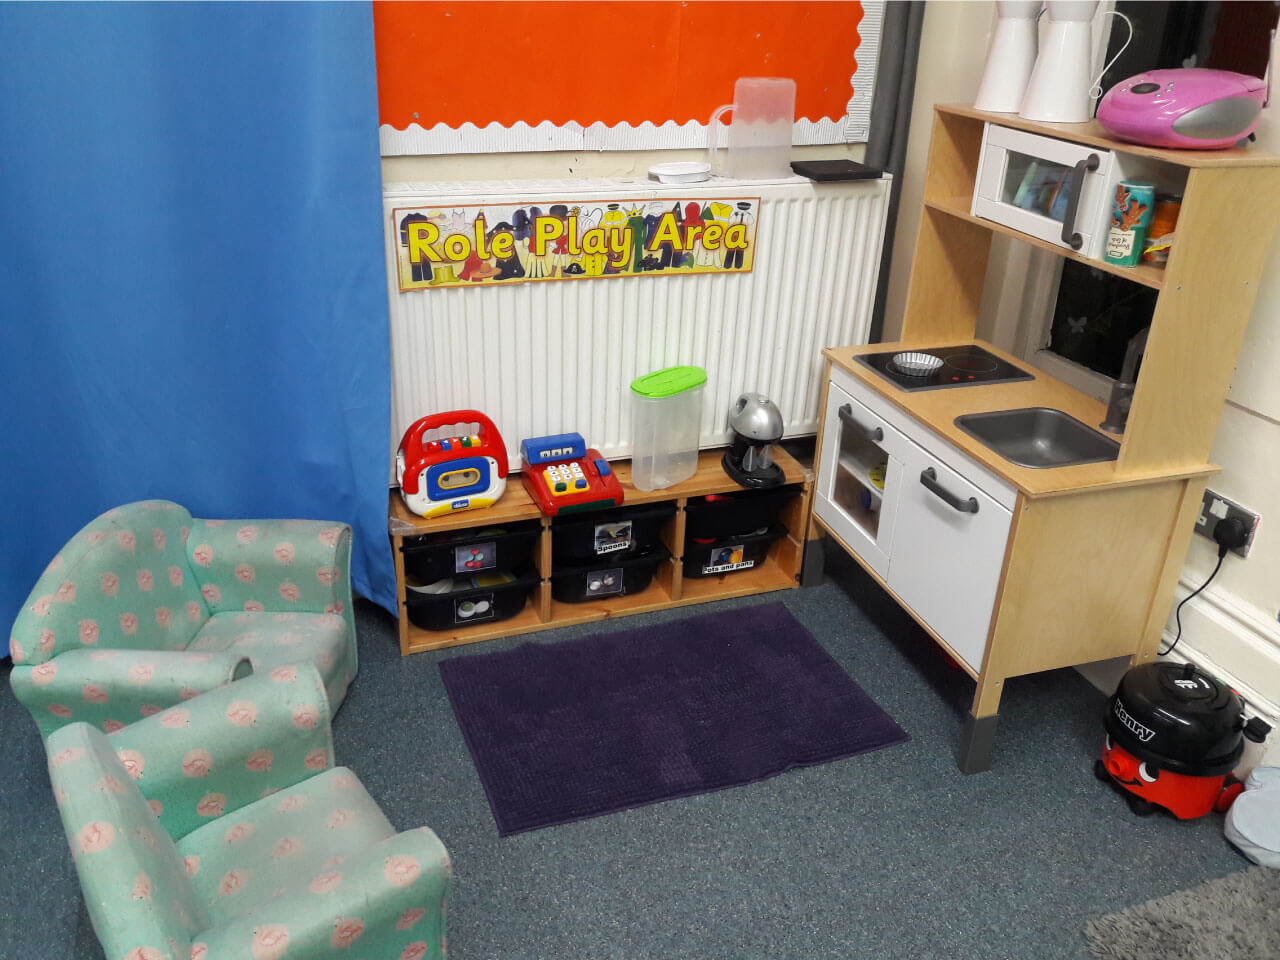 Role play area for curious toddlers